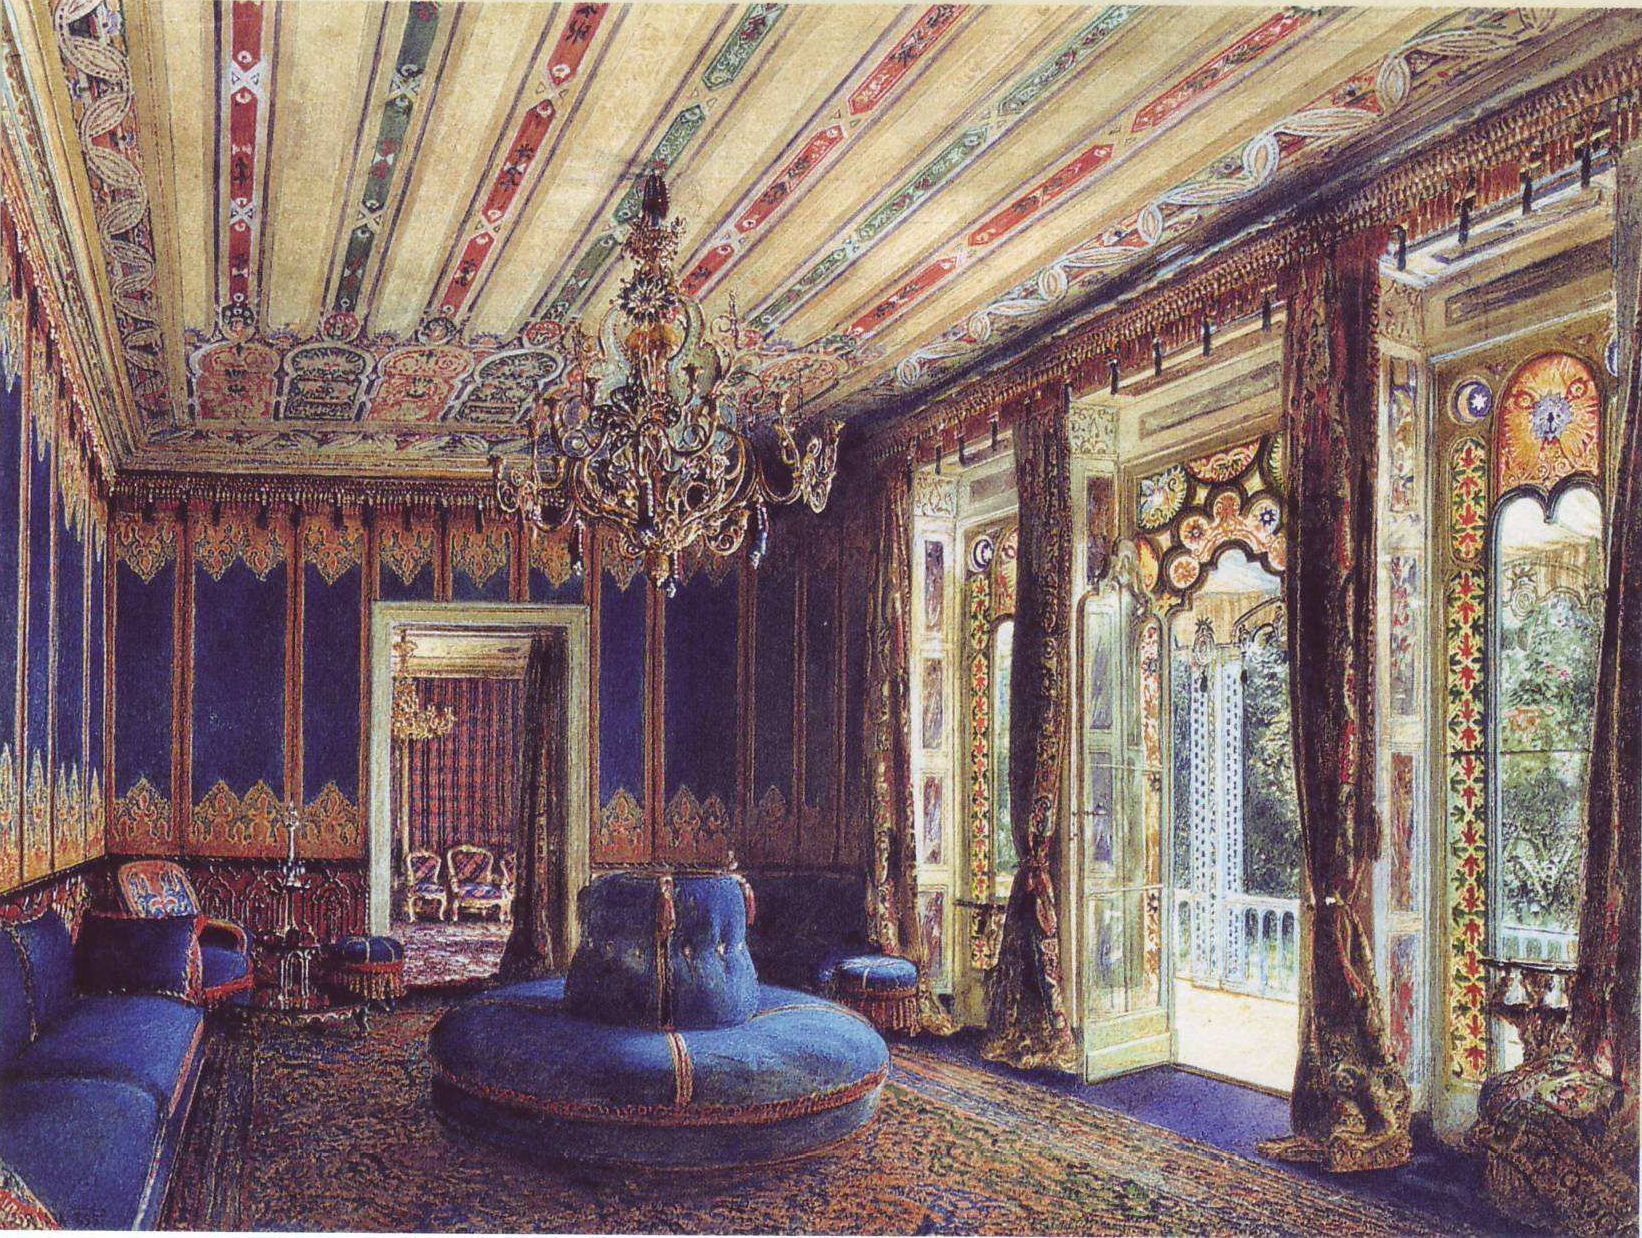 Pin on for INTD 136 historic interiors